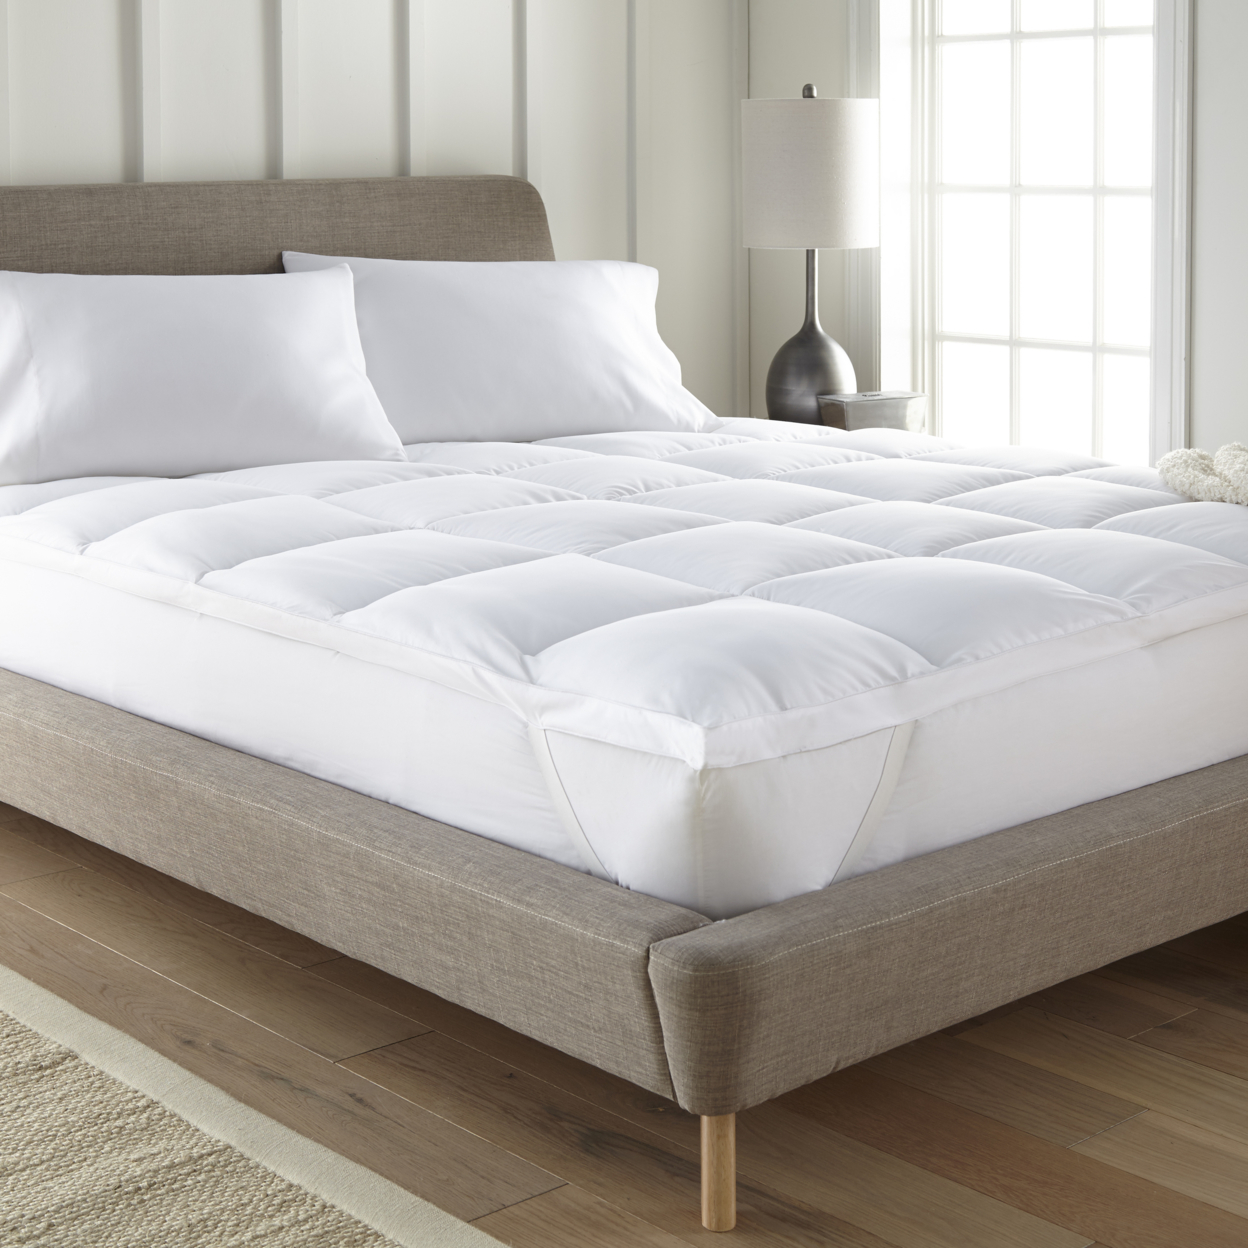 Egyptian Comfort 1800 Series Mattress Pad California King